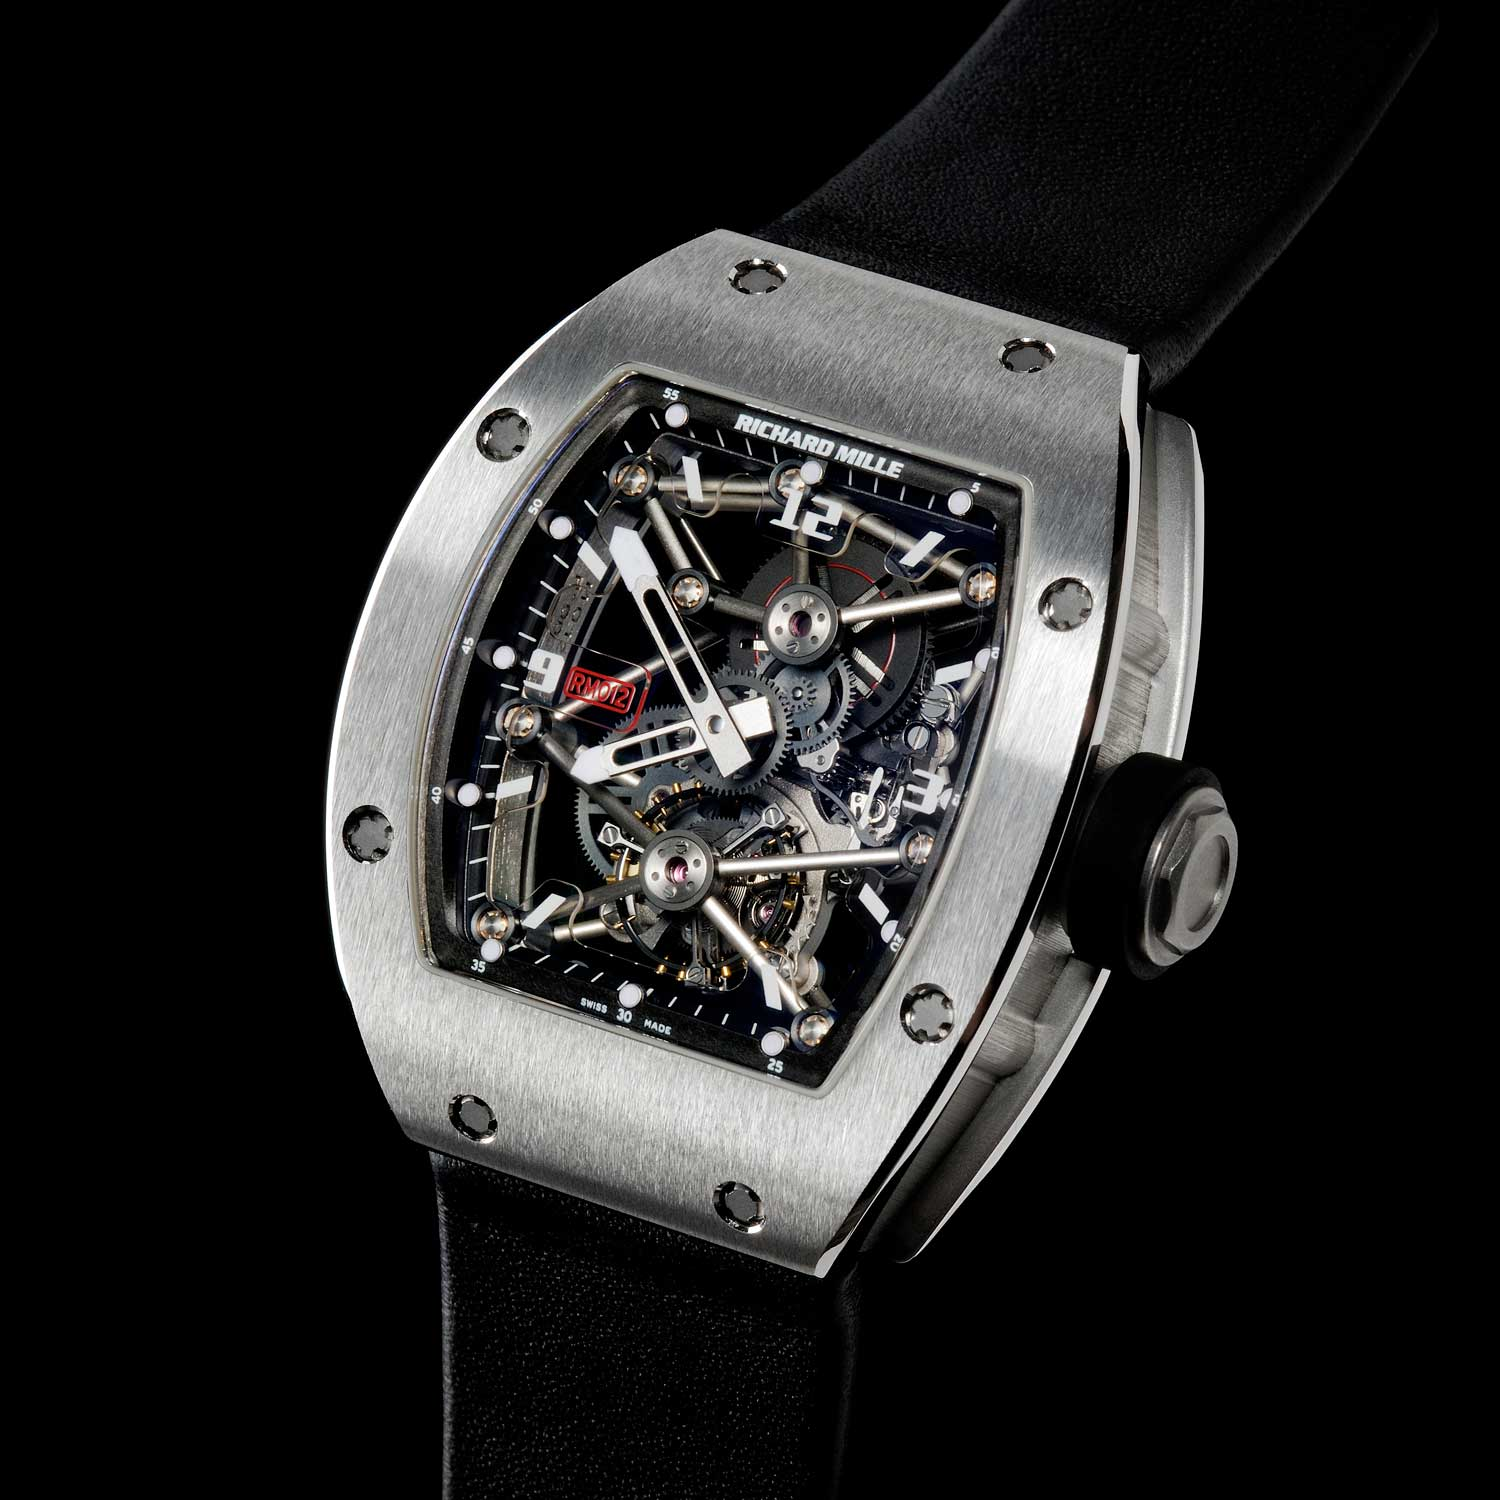 The RM 012 Tourbillon, winner of the Aiguille d'Or prize at the 2007 GPHG